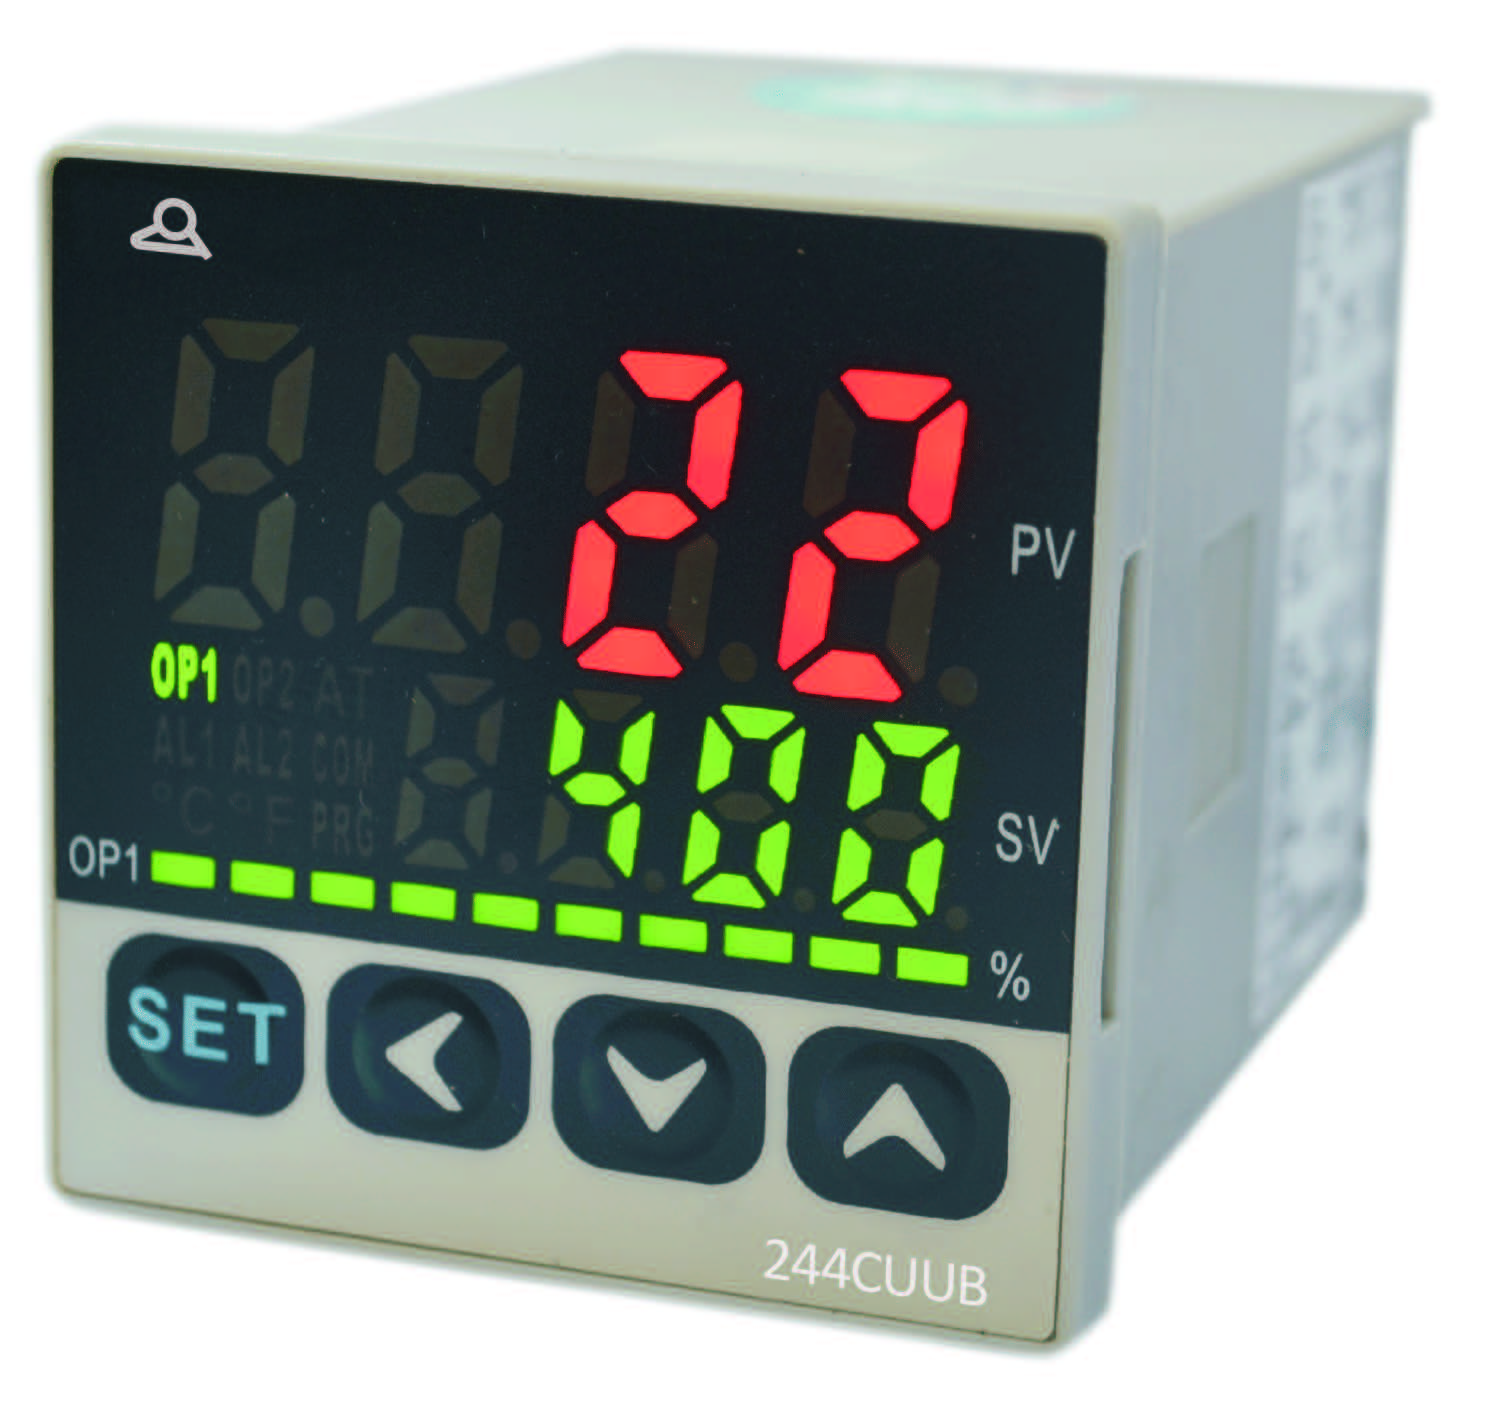 48 X Intelligent Pid Temperature Controller Double Display Complete Package Thermocouple Probe Ssr Reduced